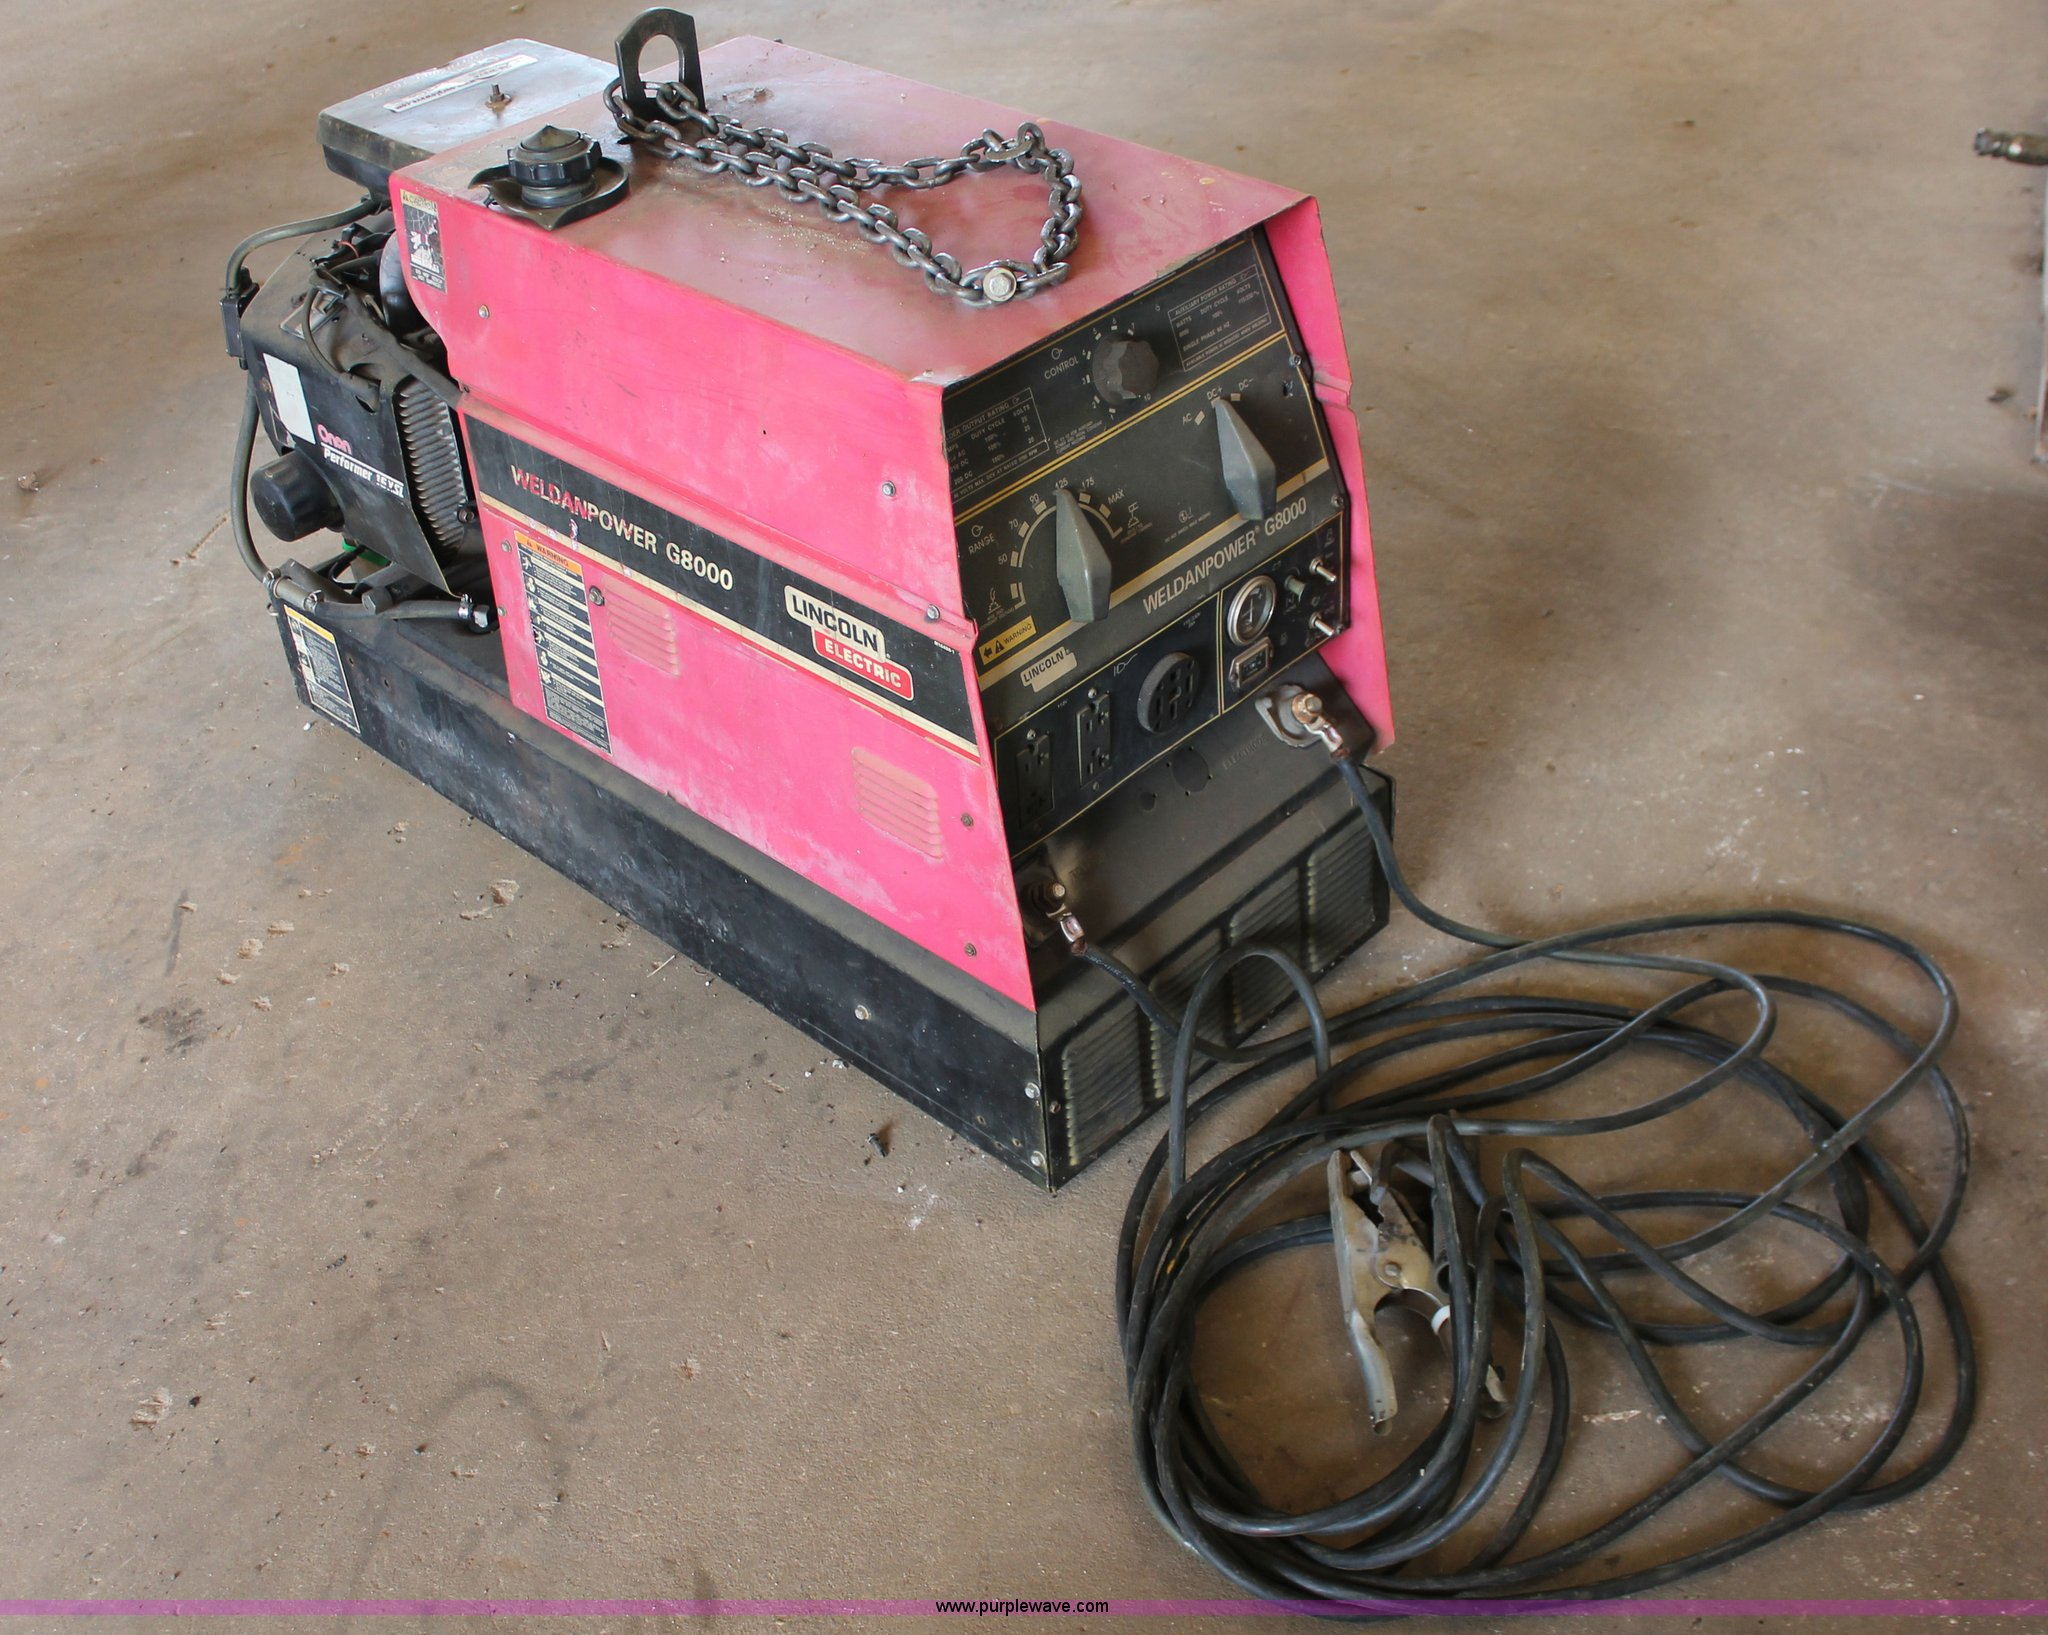 Lincoln Weldanpower G8000 Welder Generator Item Ao9456 S And Parts Image For